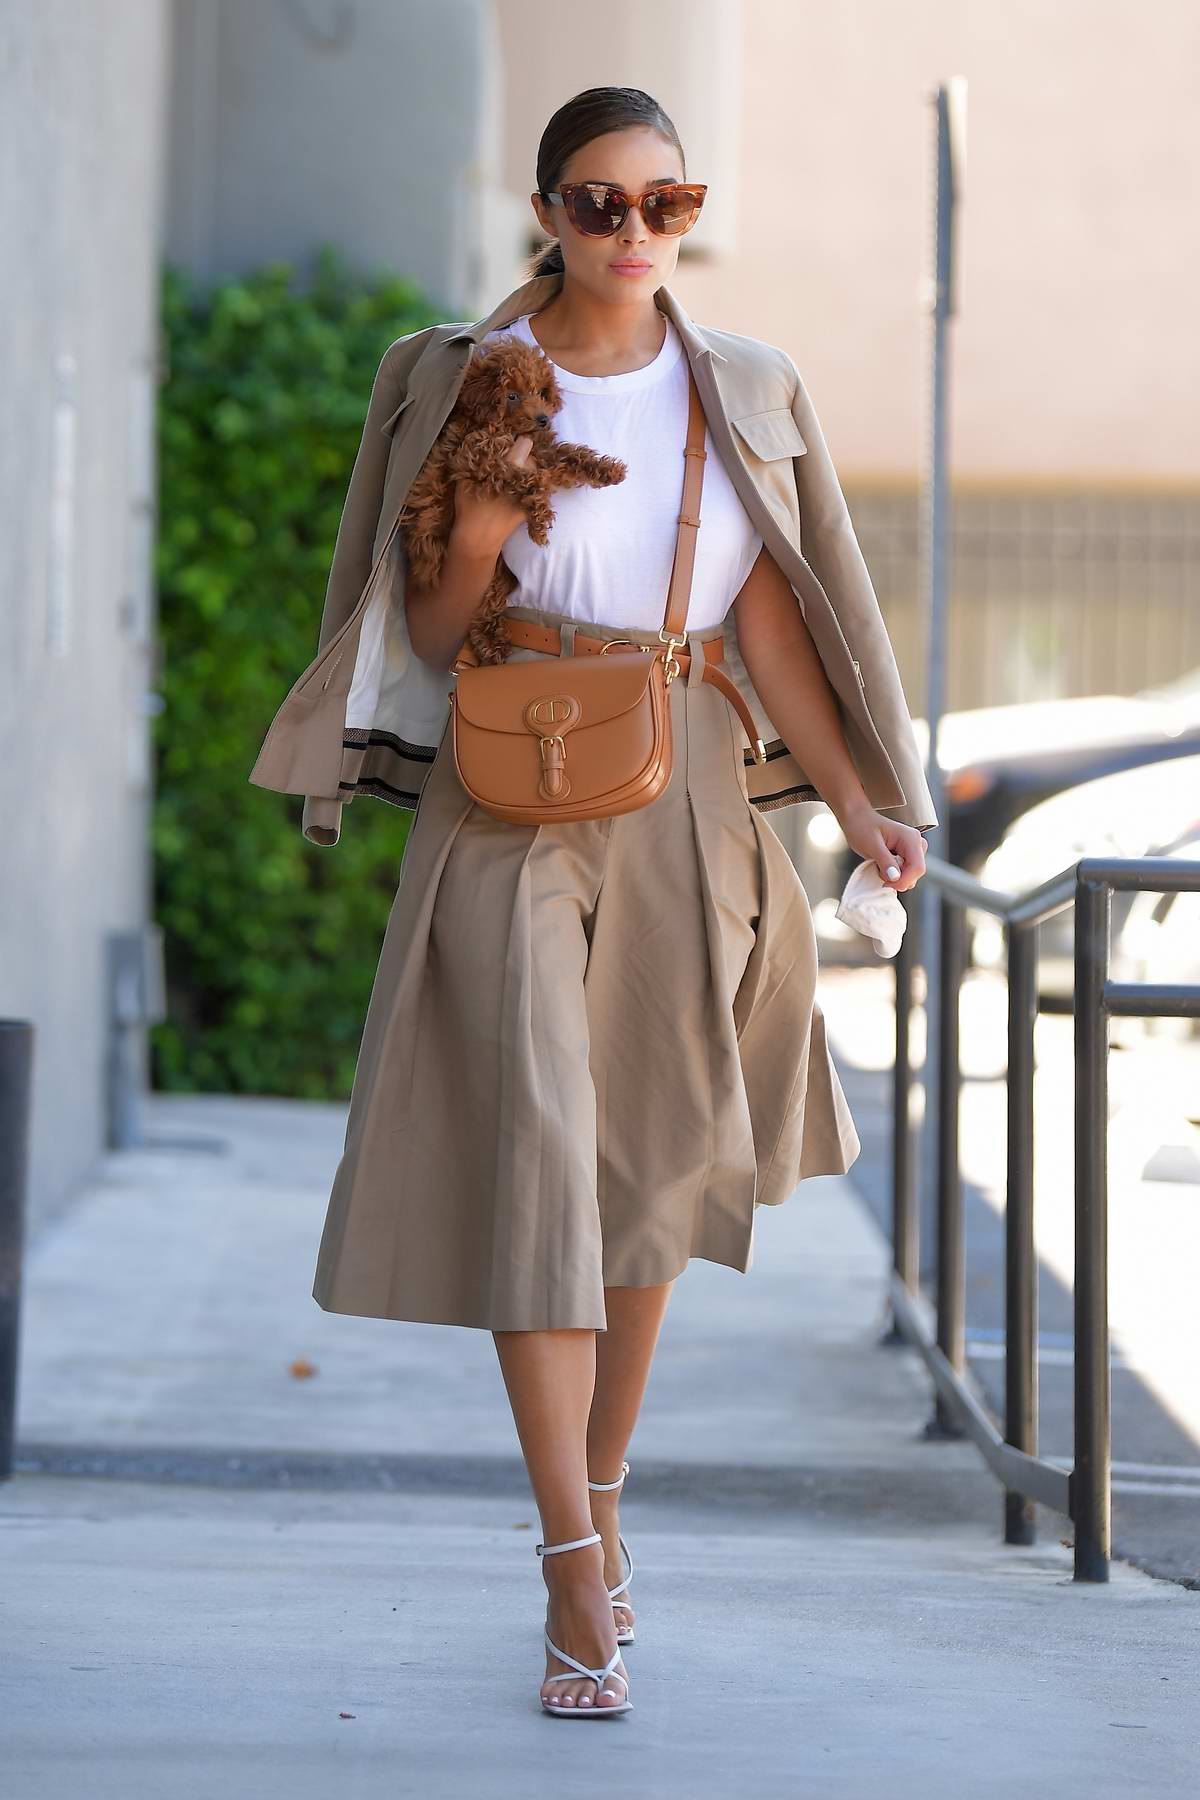 Olivia Culpo looks stylish in chic Dior ensemble as she take her pup to the vet in Los Angeles